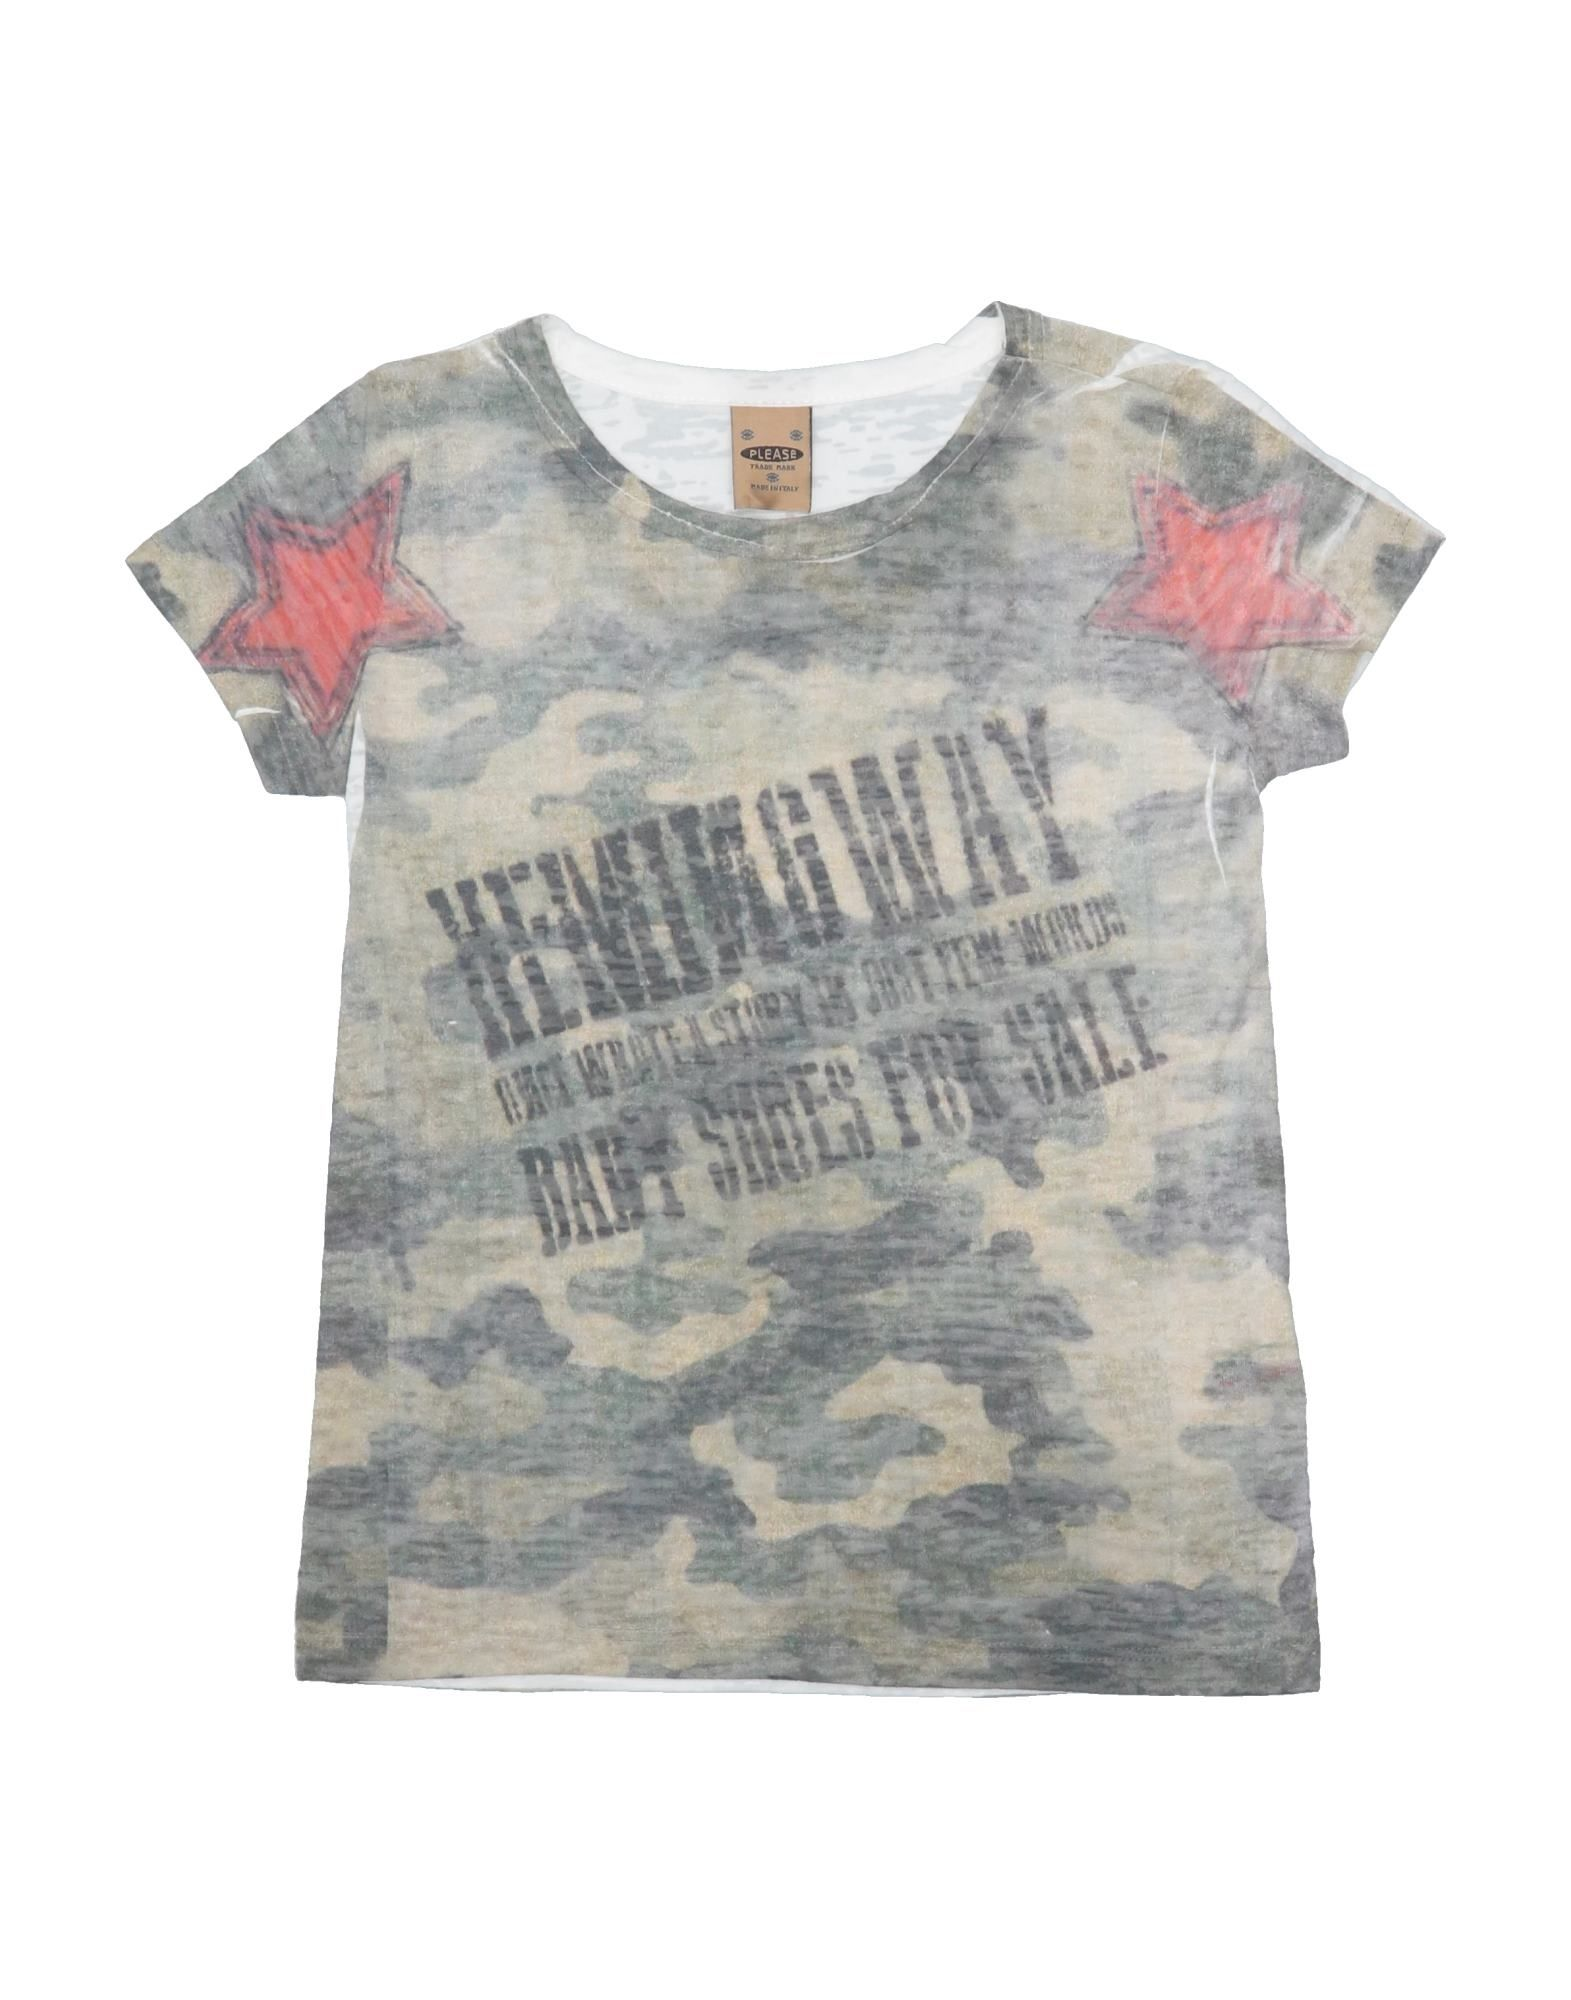 Please Kids' T-shirts In Gray